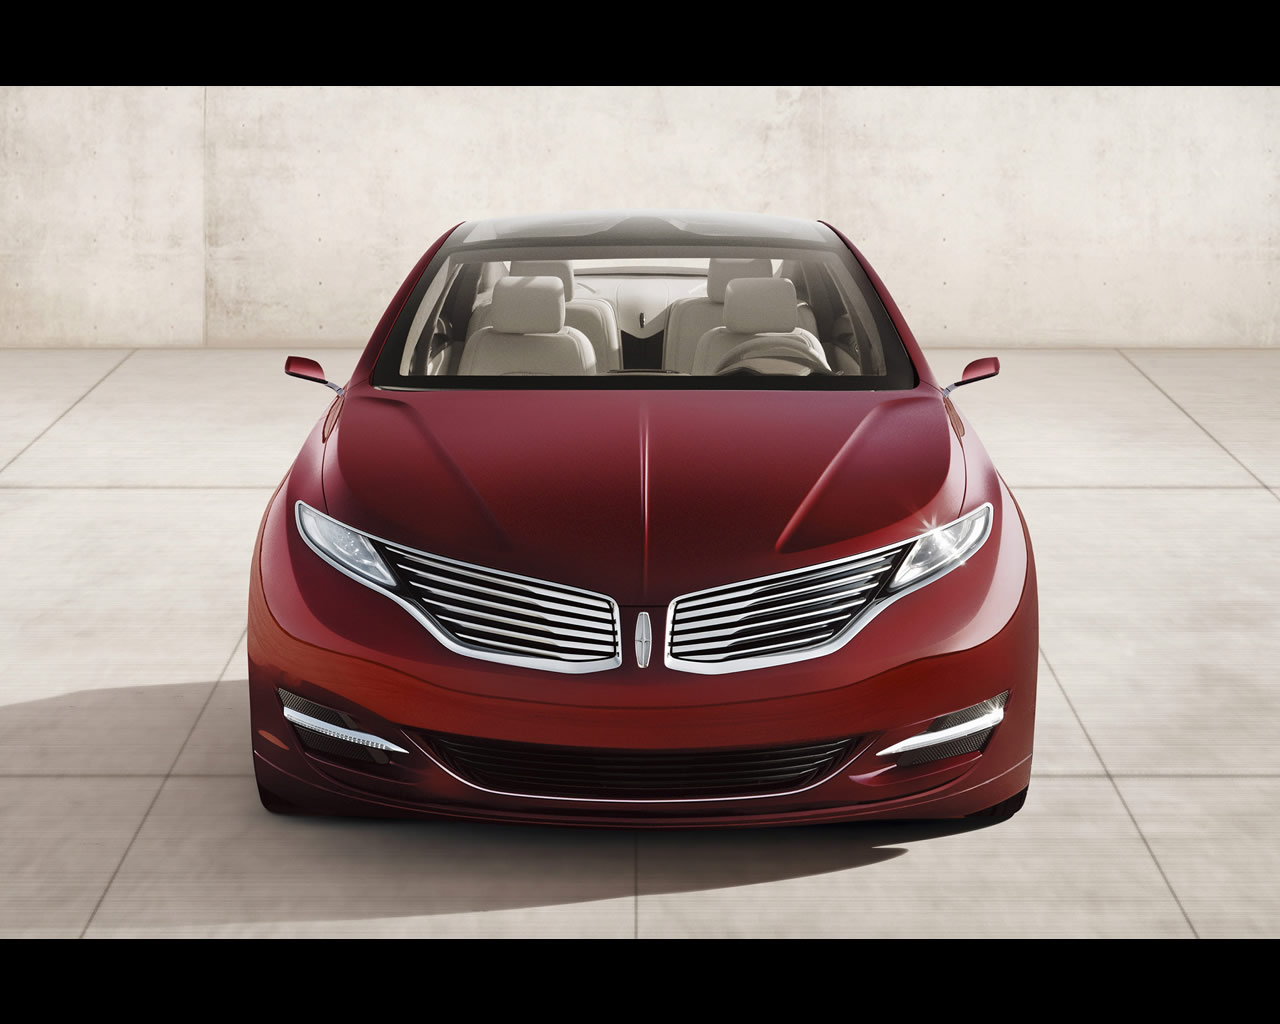 http://www.autoconcept-reviews.com/cars_reviews/ford/ford-group-lincoln-mkz-concept-2012/wallpapers/ford-lincoln-mkz-concept-2012-1.jpg